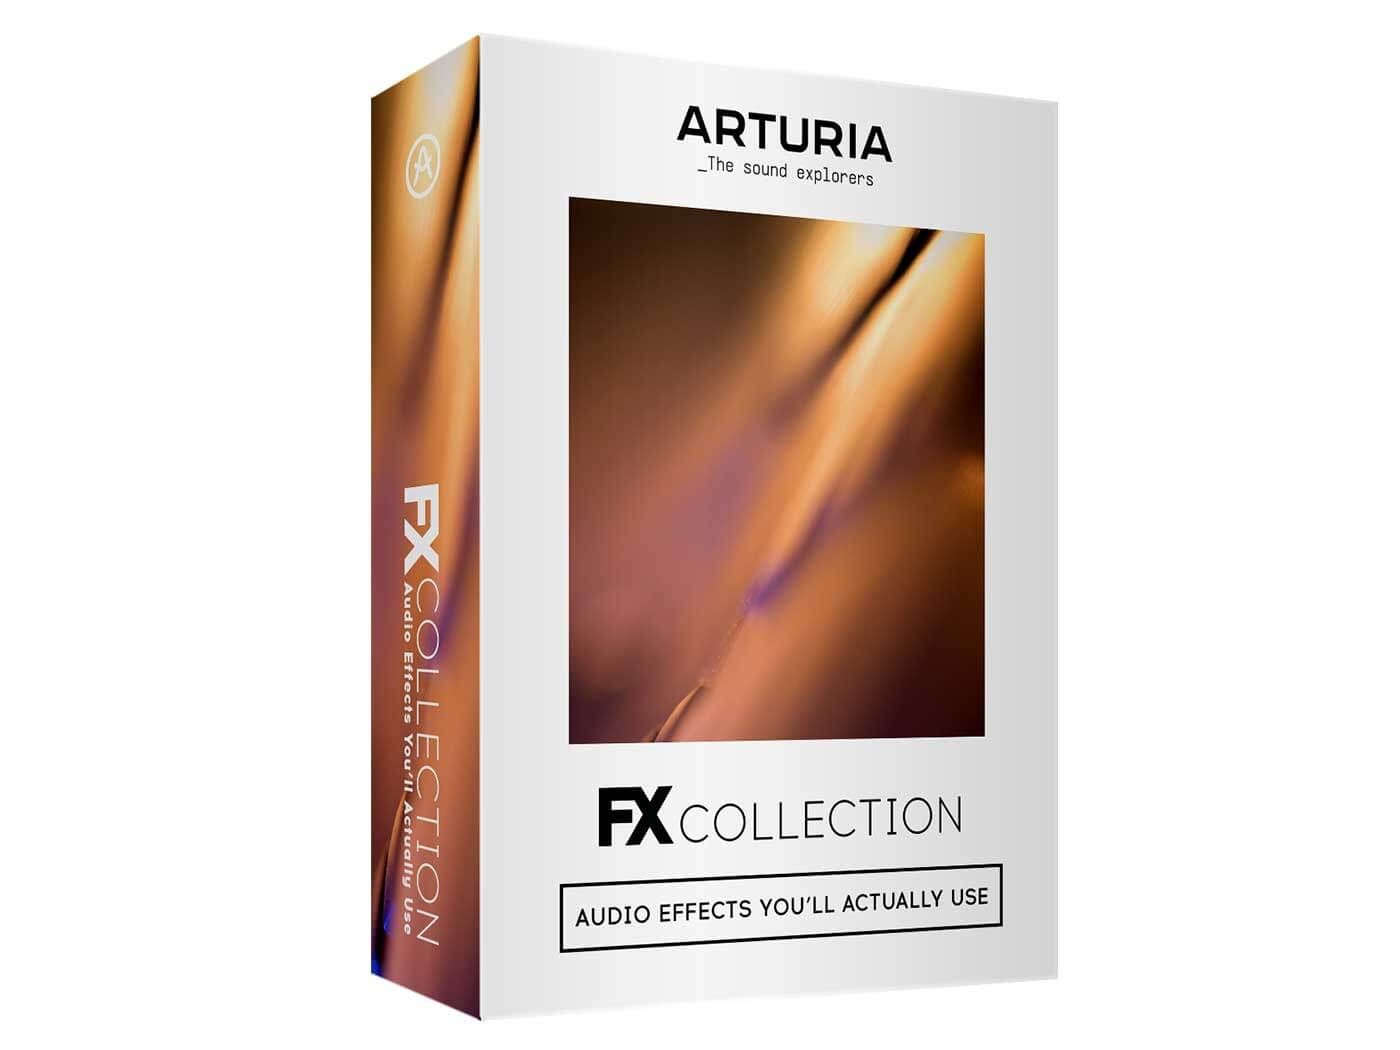 Arturia bundles up 15 effects plug-ins in its FX Collection - MusicTech